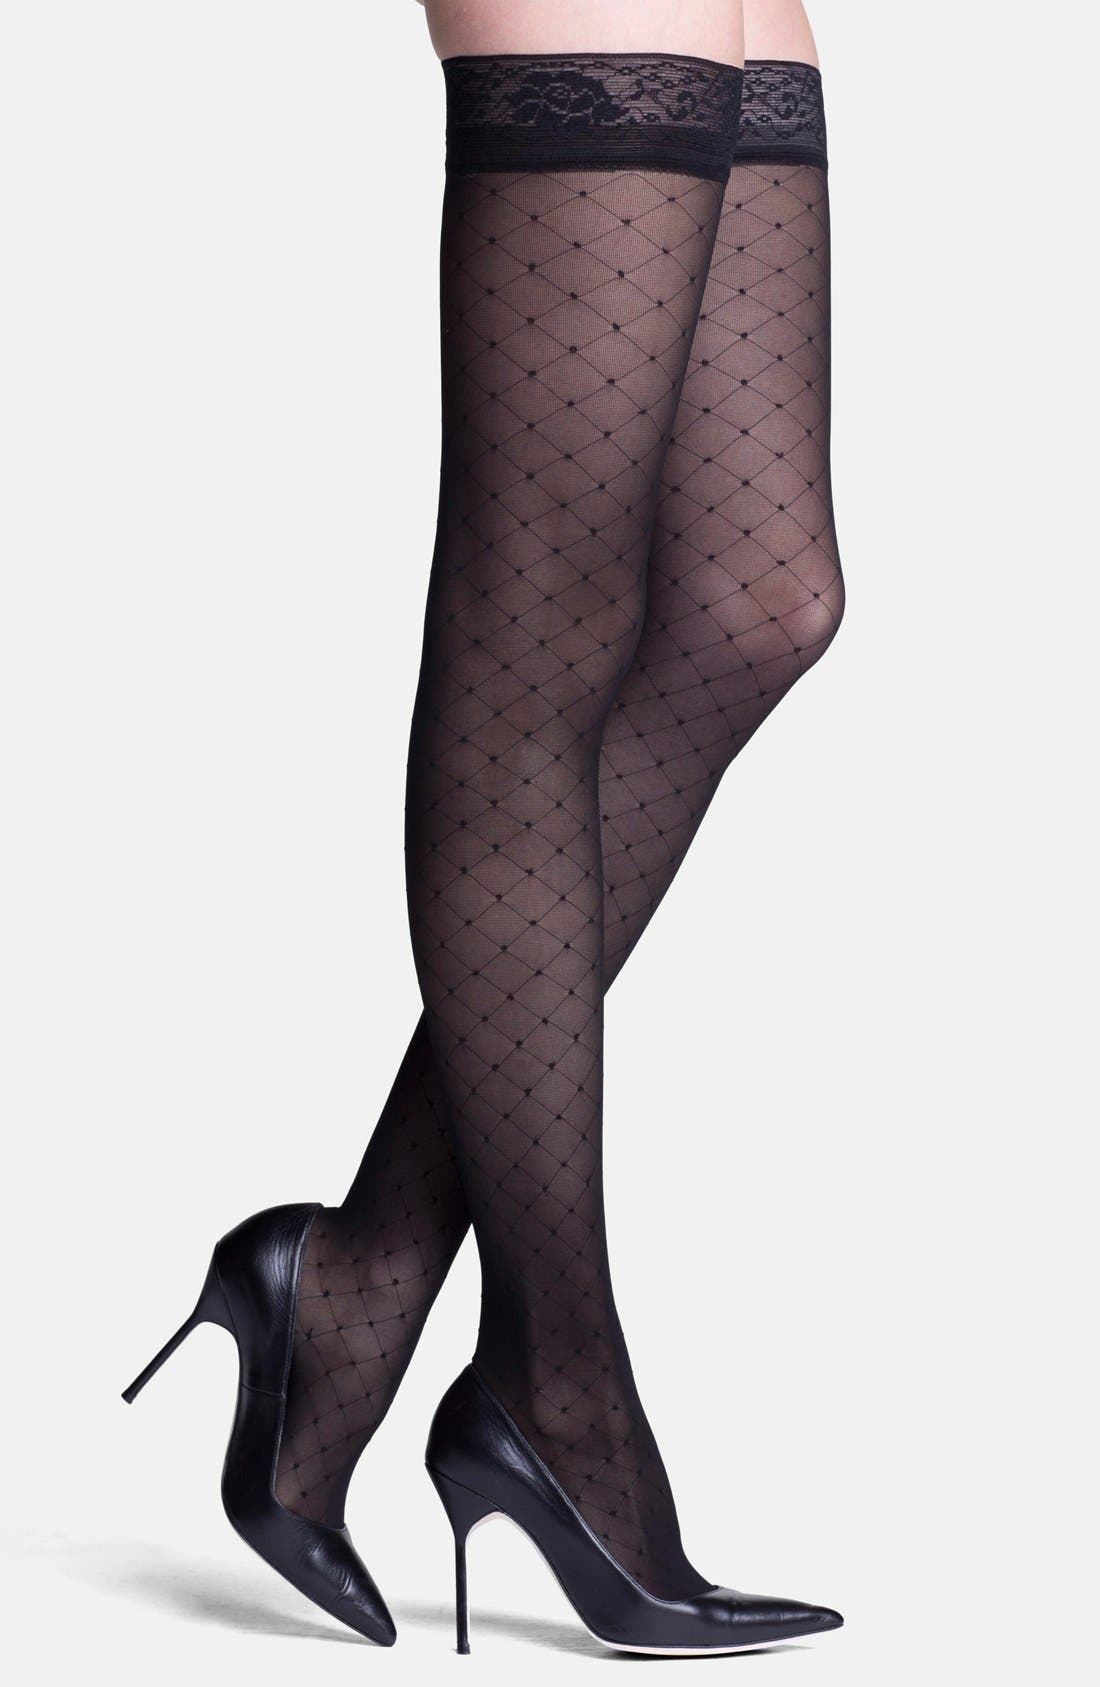 Alternate Image 1 Selected - INSIGNIA by SIGVARIS 'Starlet' Diamond Pattern Compression Thigh Highs